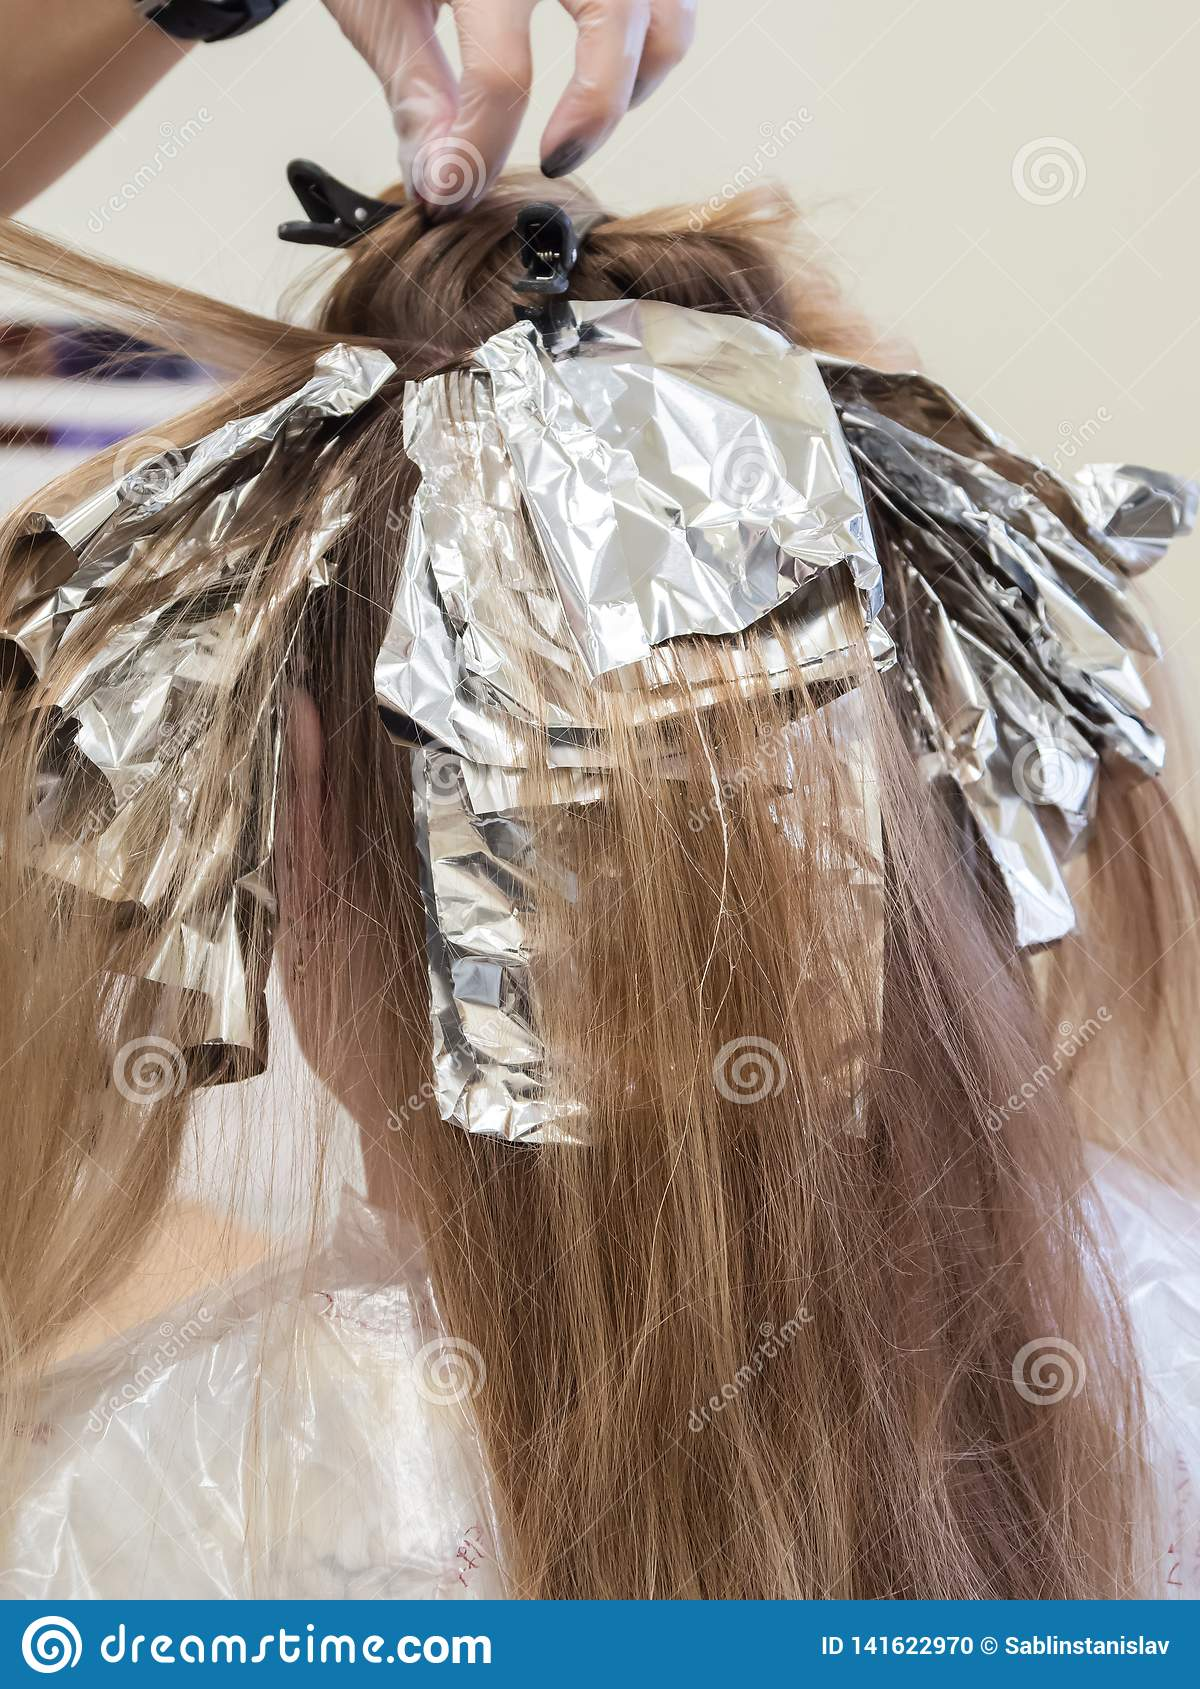 Hair Highlights In The Beauty Salon Stock Photo Image Of